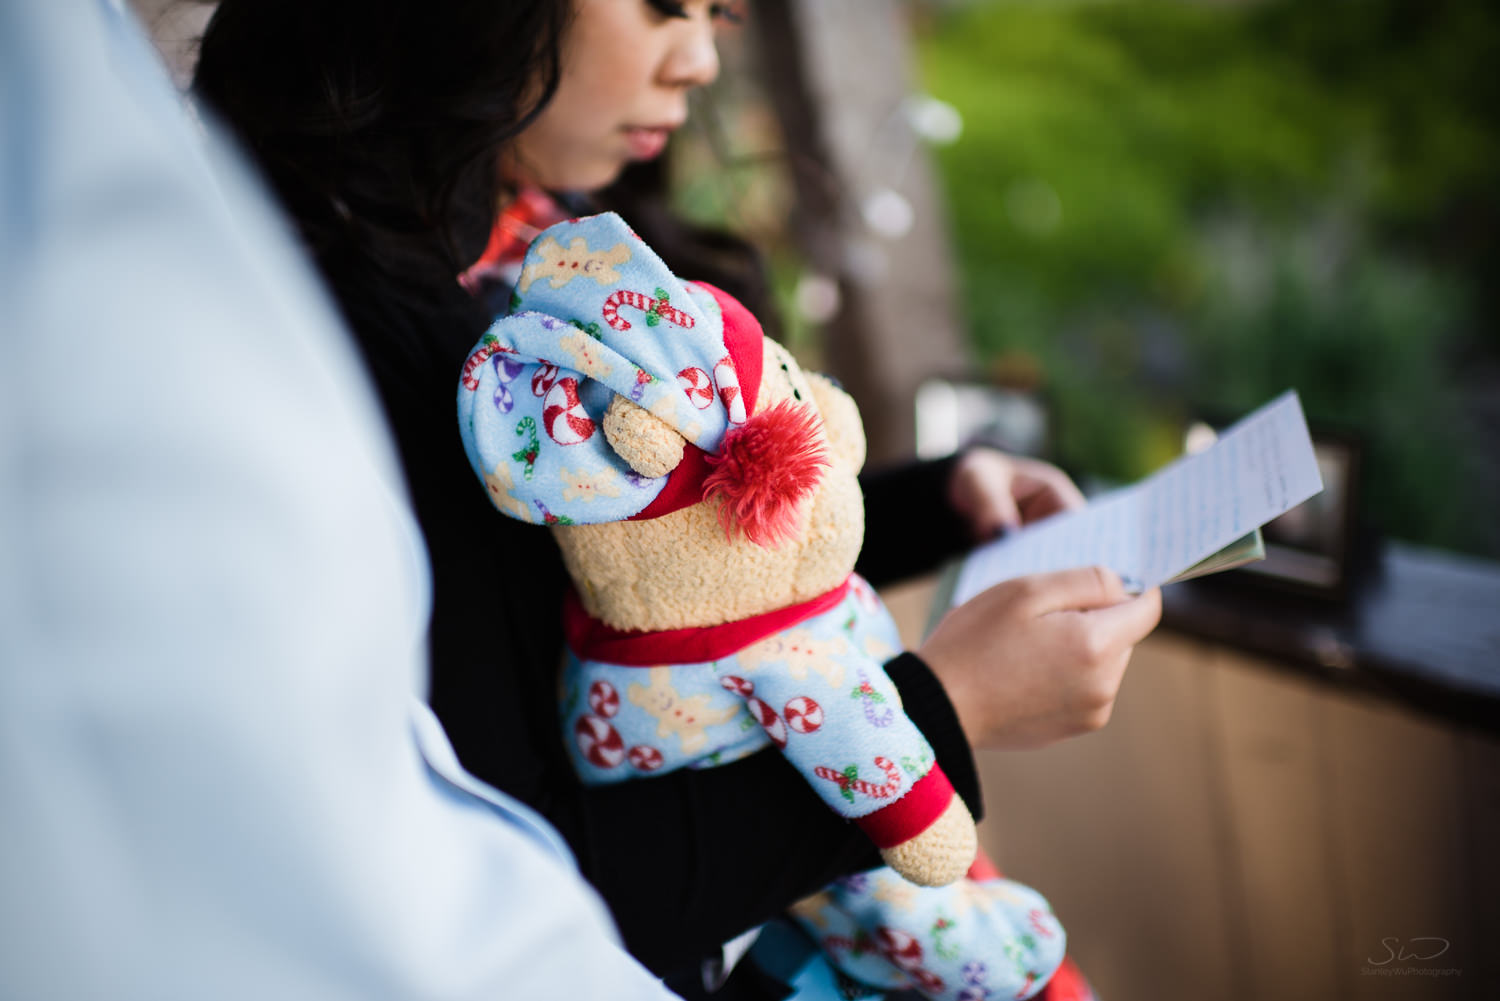 Reading love letters while holding winnie. Cliffside proposal & engagement in Dana Point | Stanley Wu Photography Portrait & Wedding Photographer | Los Angeles, Orange County, Southern California